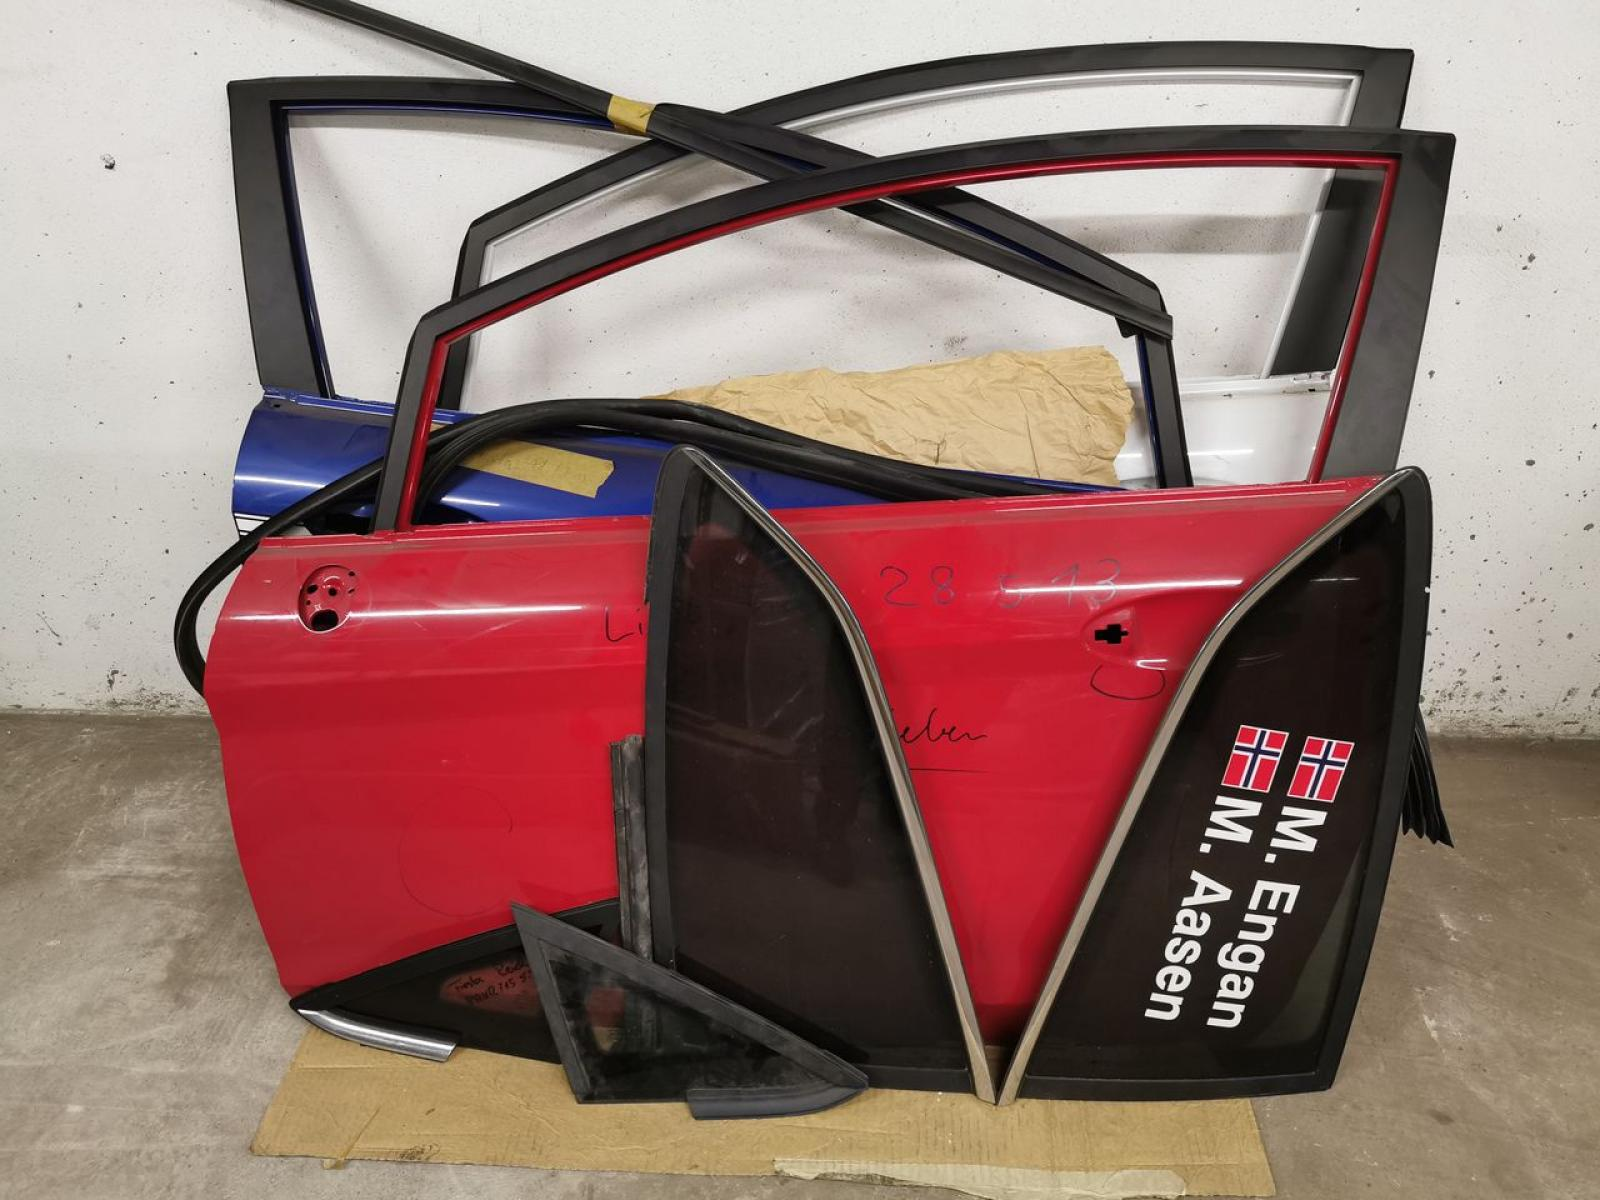 Fiesta R2/T Spare Parts Selection - 3